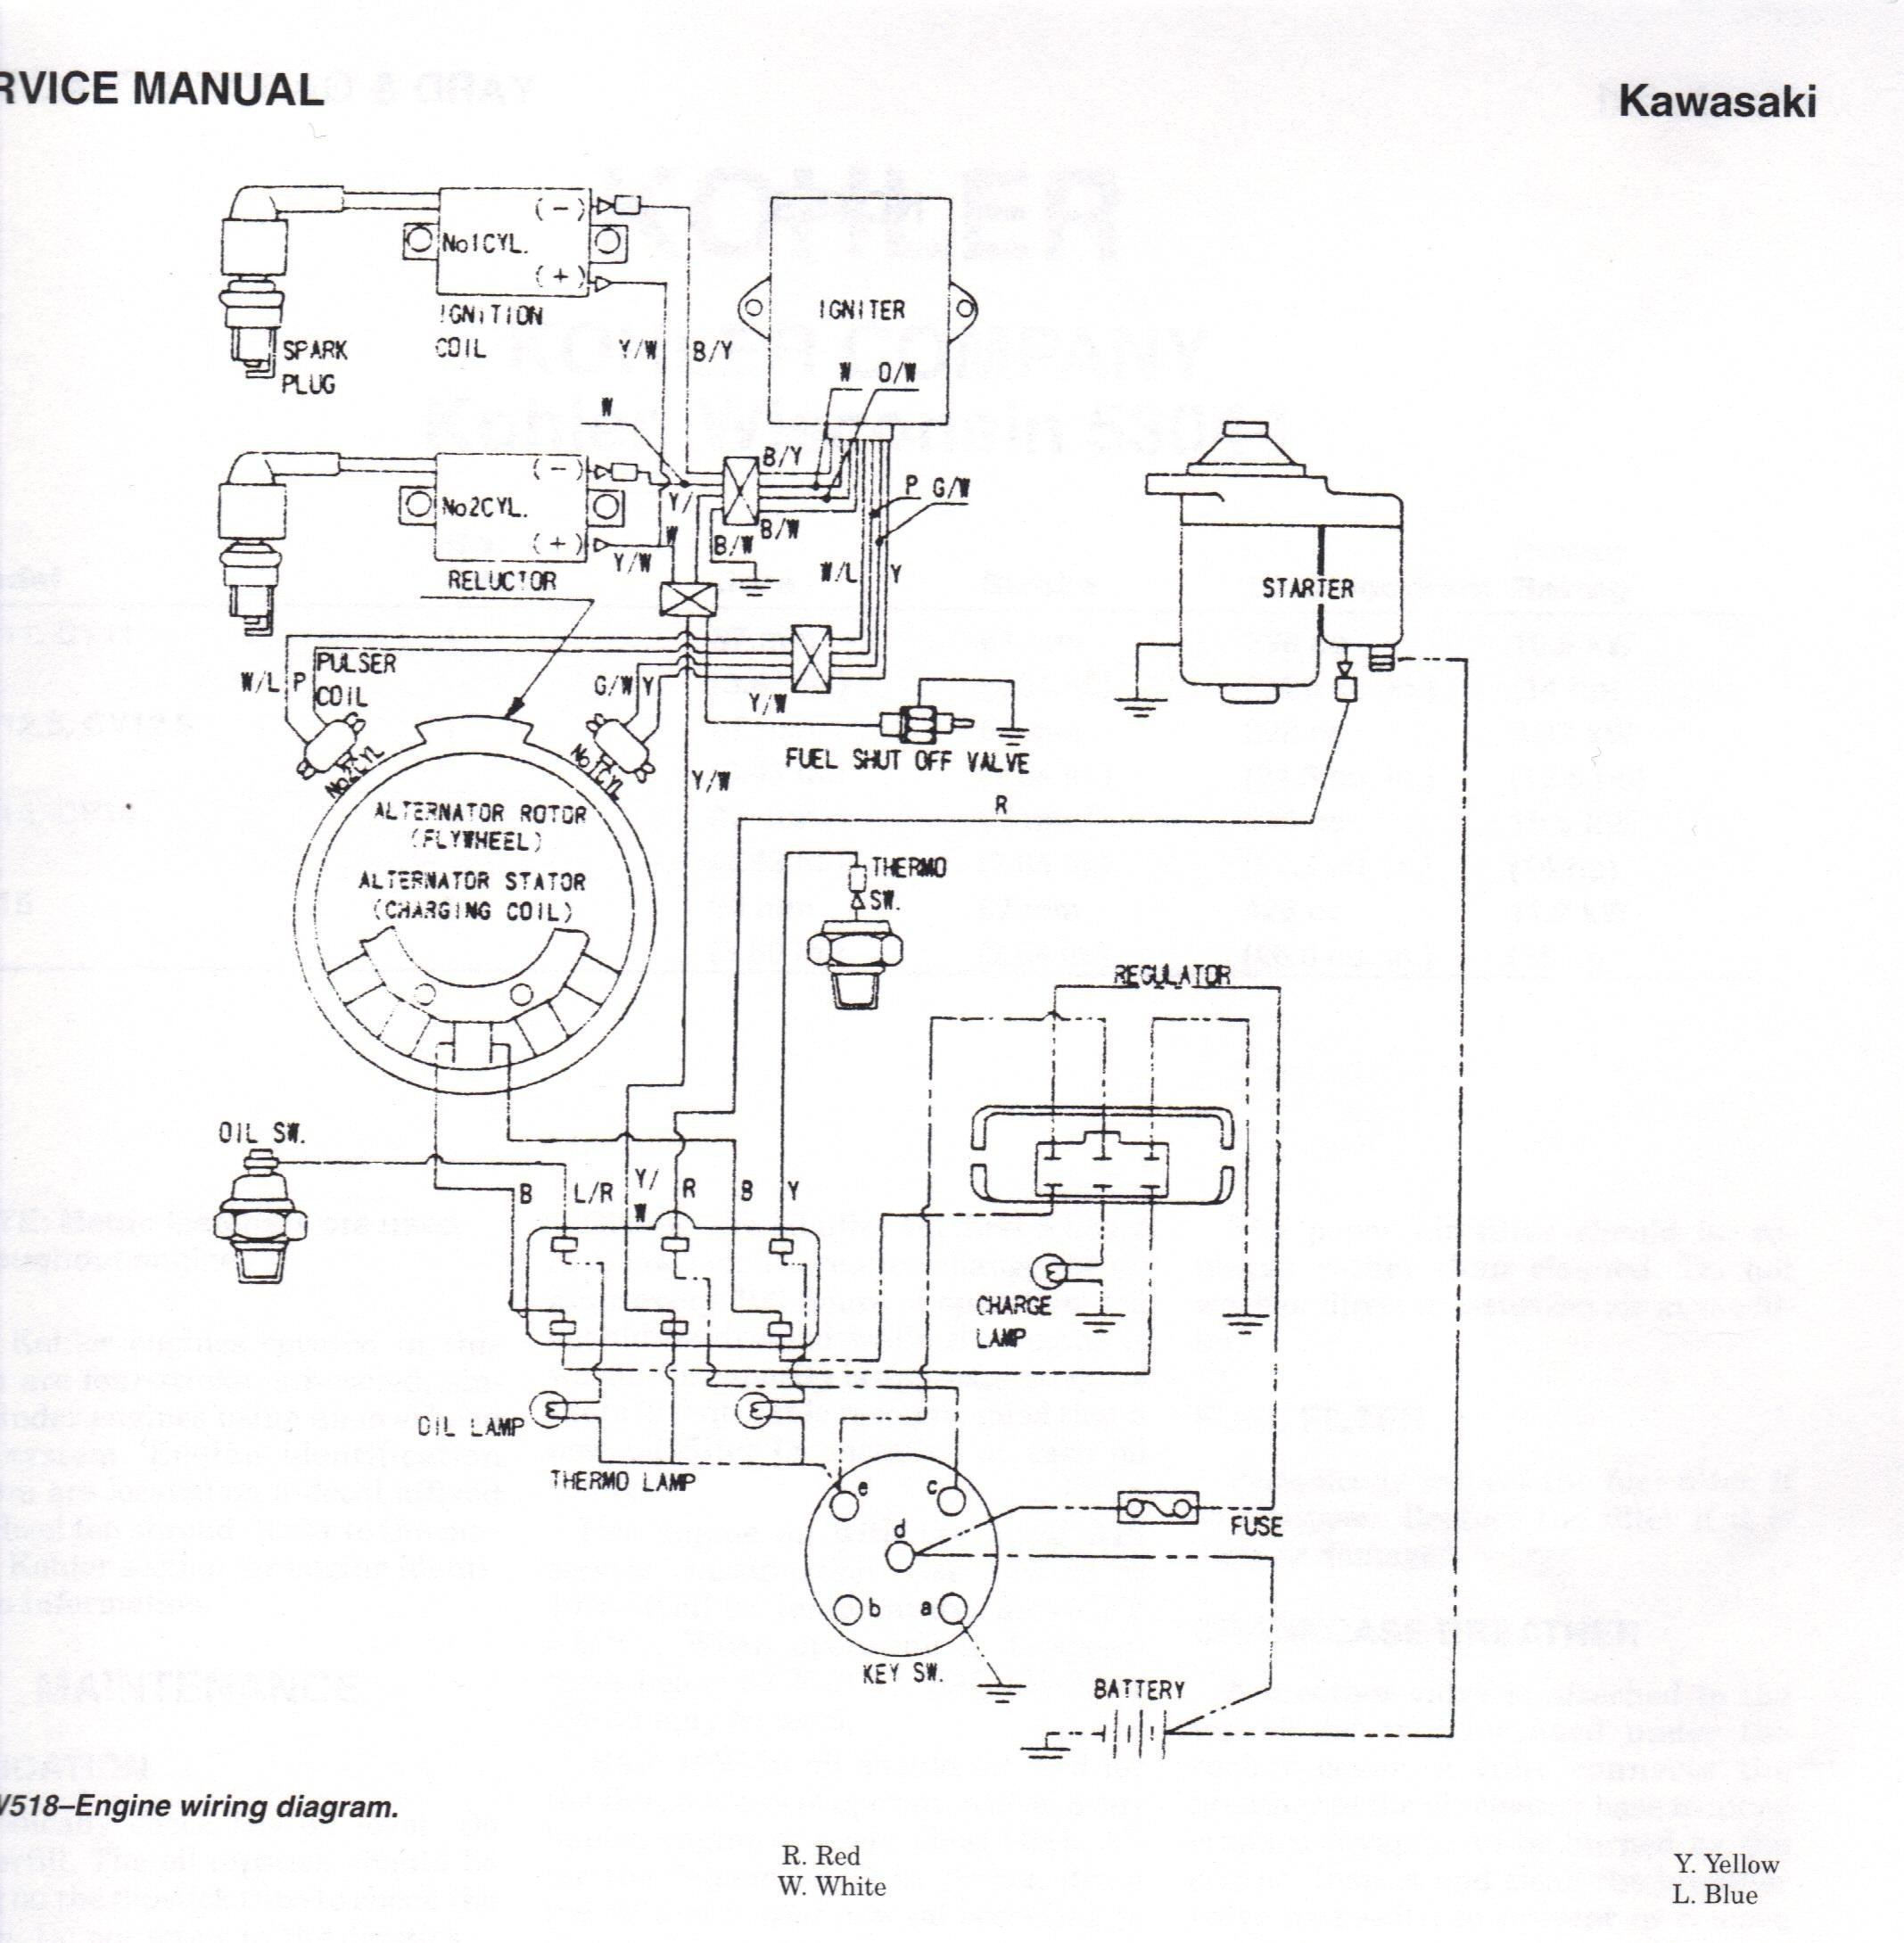 Es 345 Wiring Diagram Auto Electrical Related With